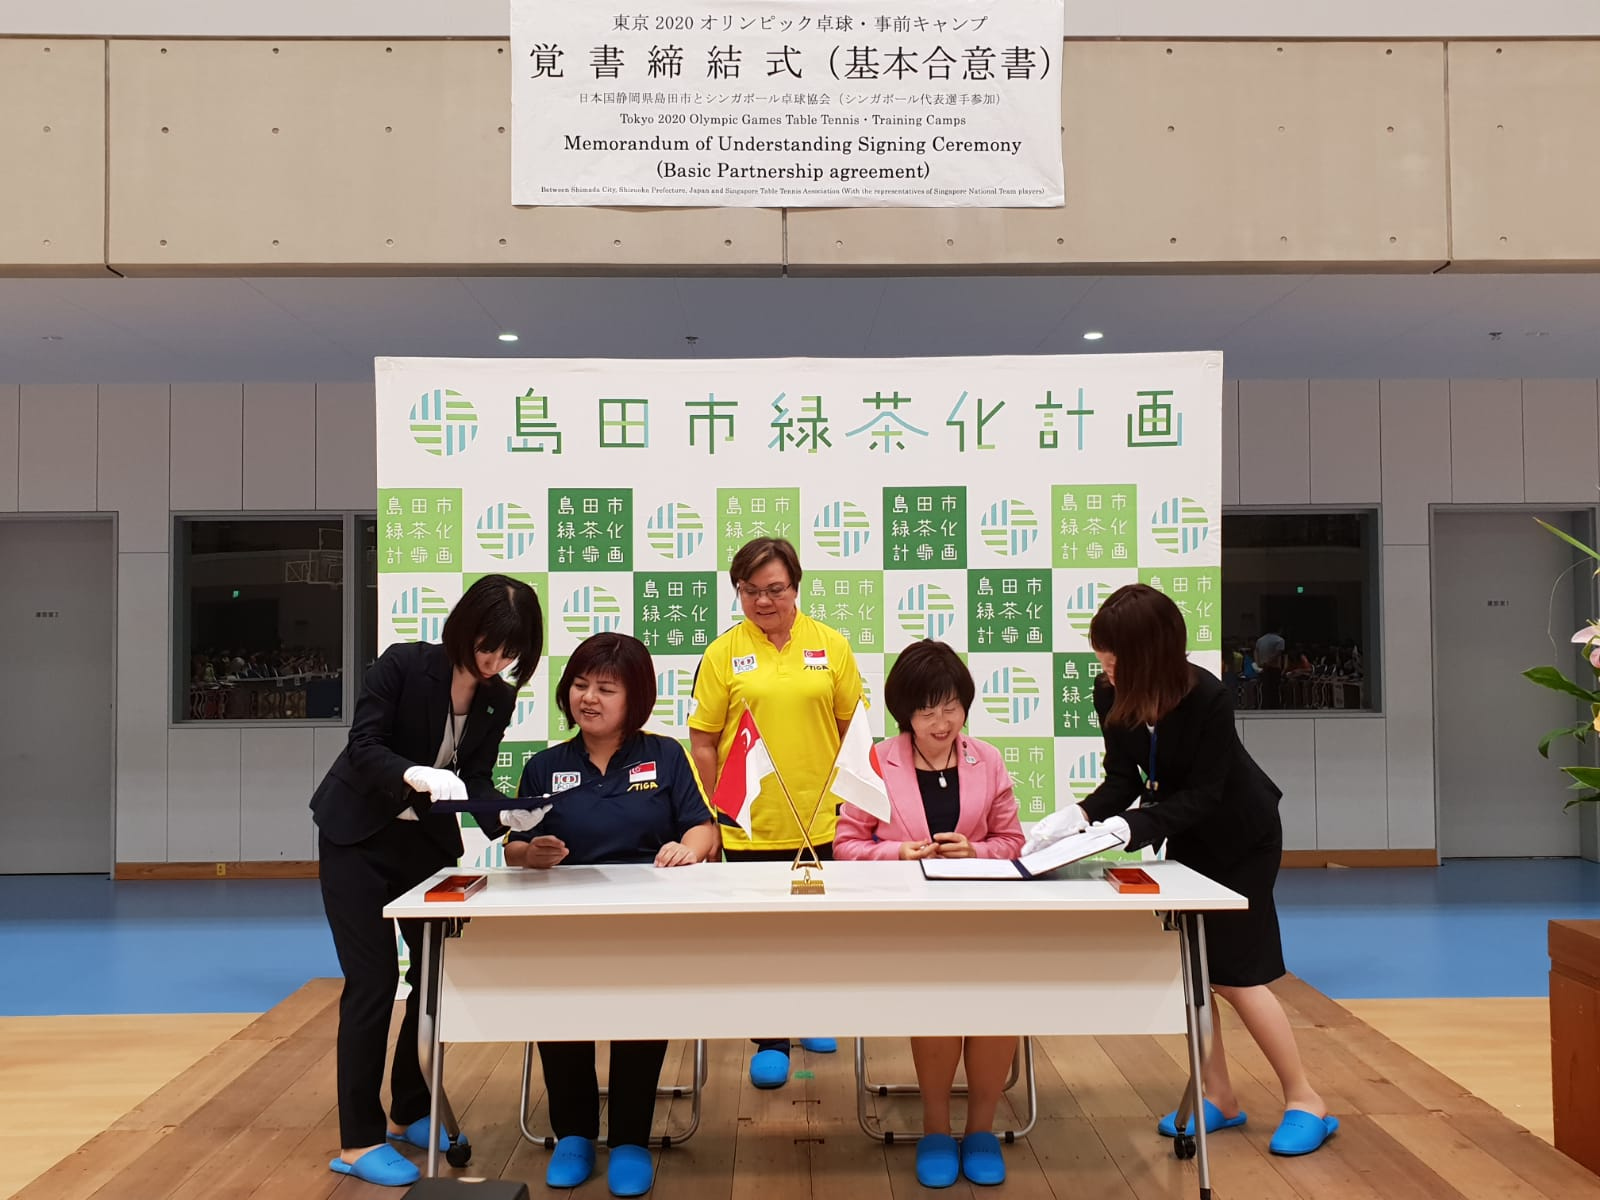 Table Tennis: Sports Exchange leading up to the 2020 Tokyo Olympics